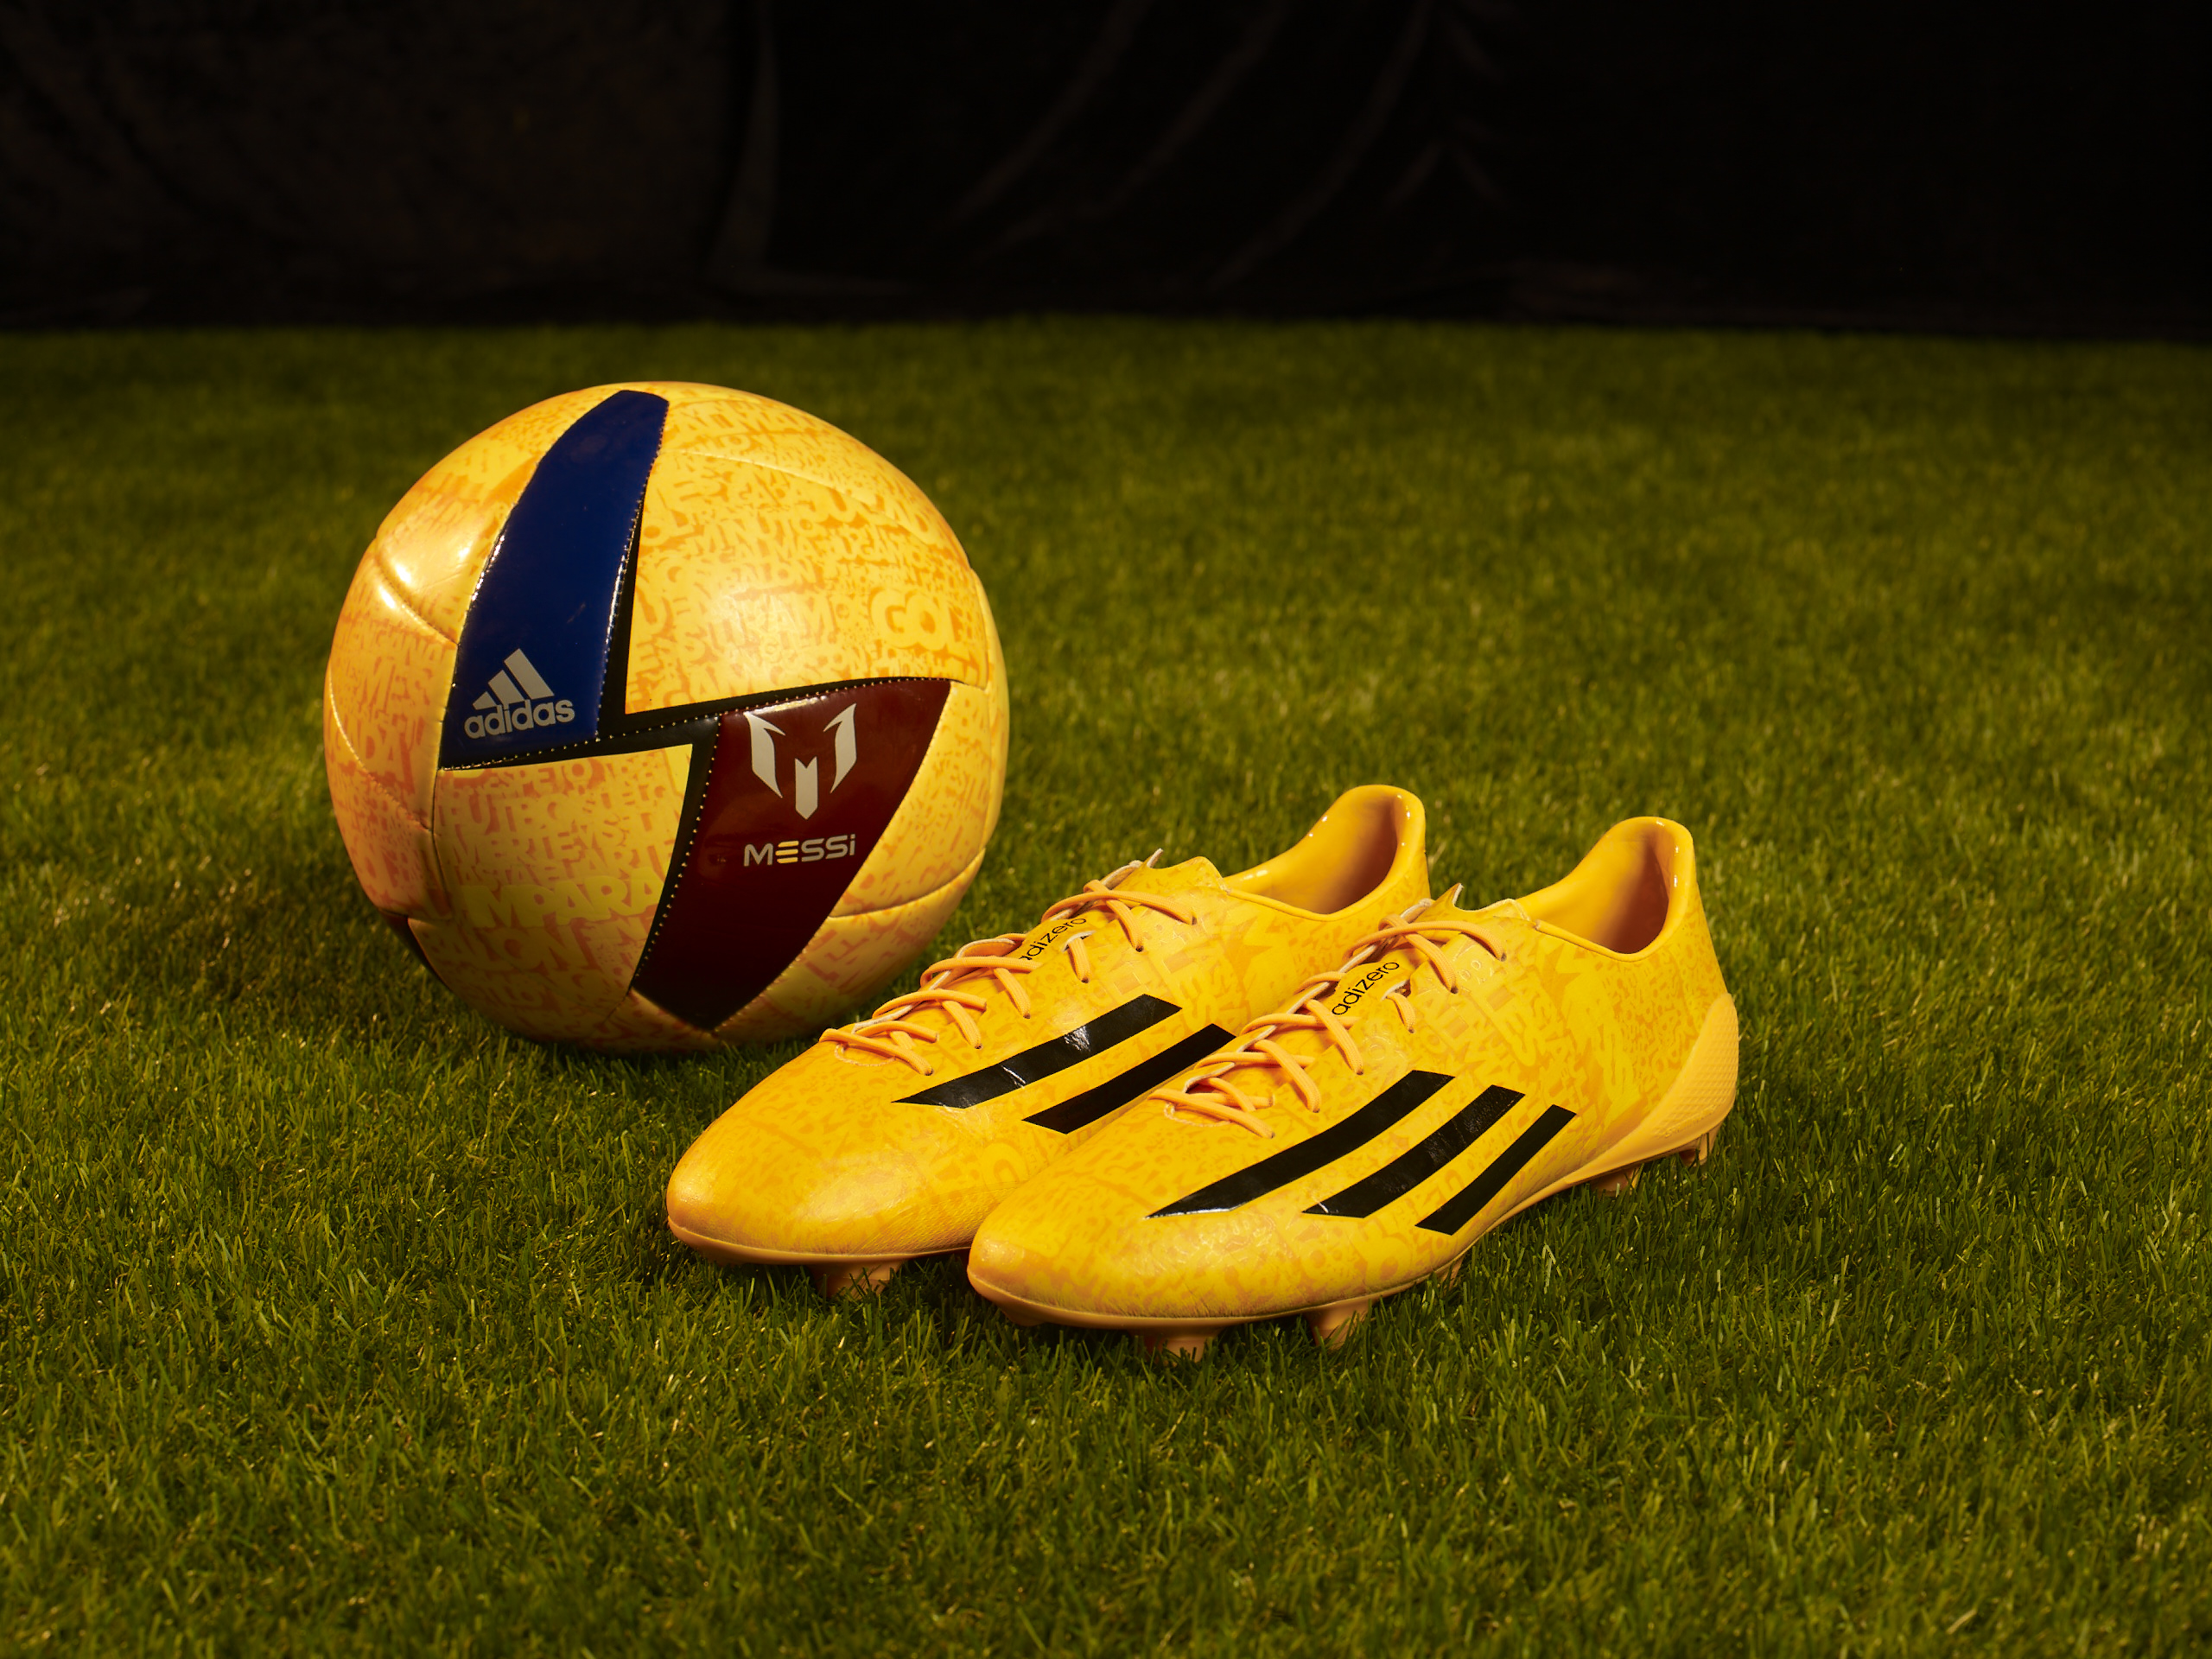 3f17fca684c Football boot relese  adidas unveils new adizero f50 Messi – SportLocker